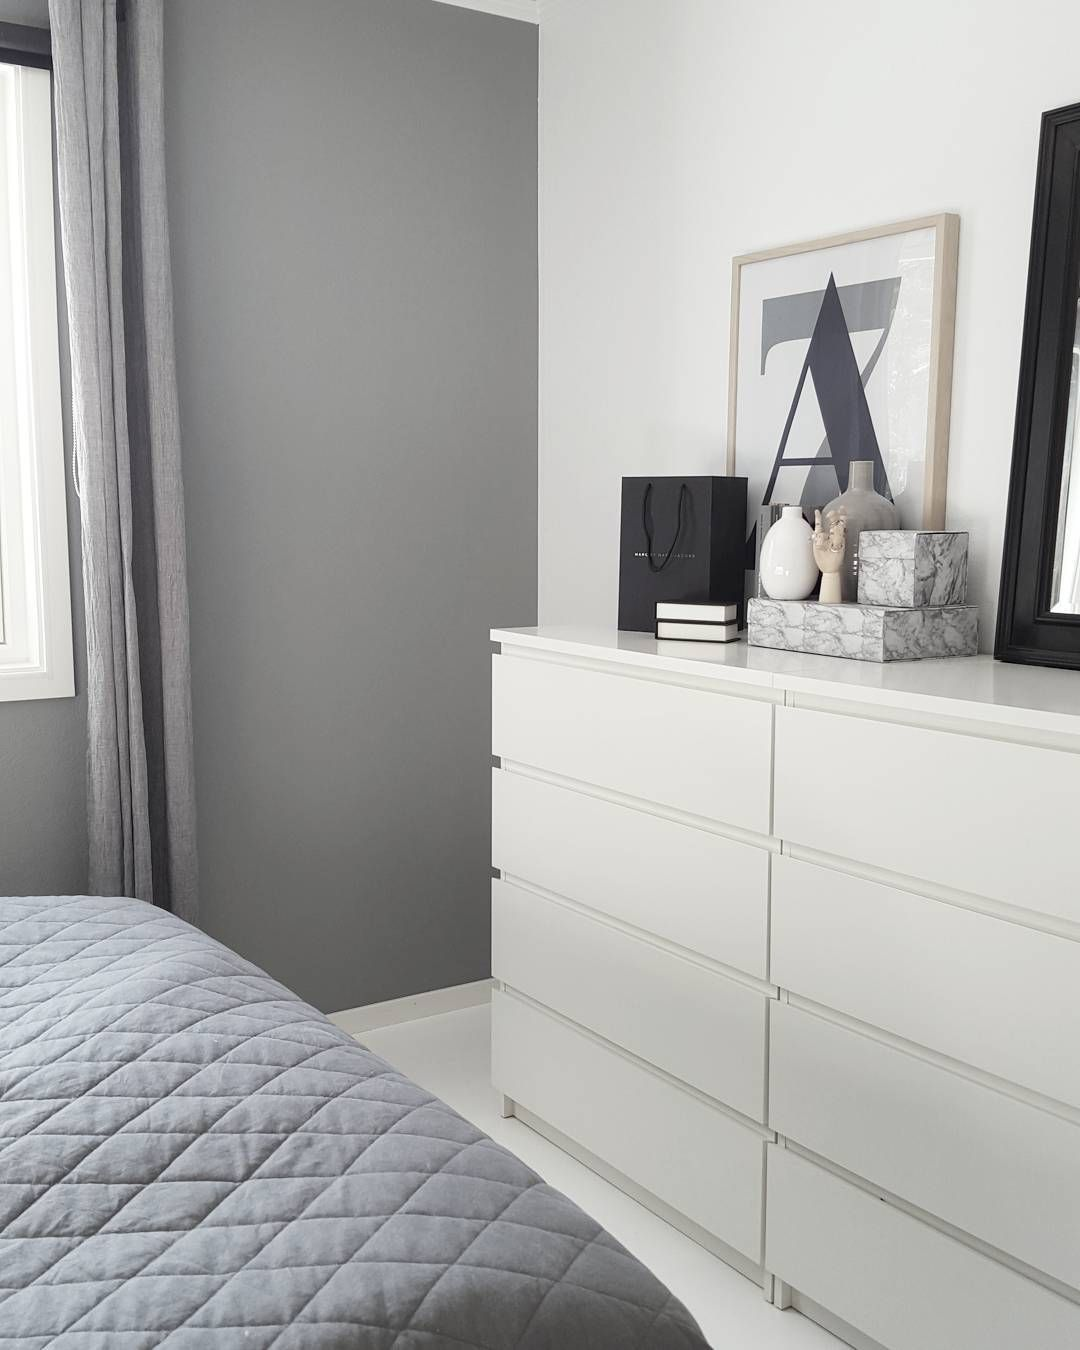 Ikea Malm Dressers Ritavalstad Ikea Bedroom Furniture White Bedroom Furniture Ikea Grey Bedroom Furniture